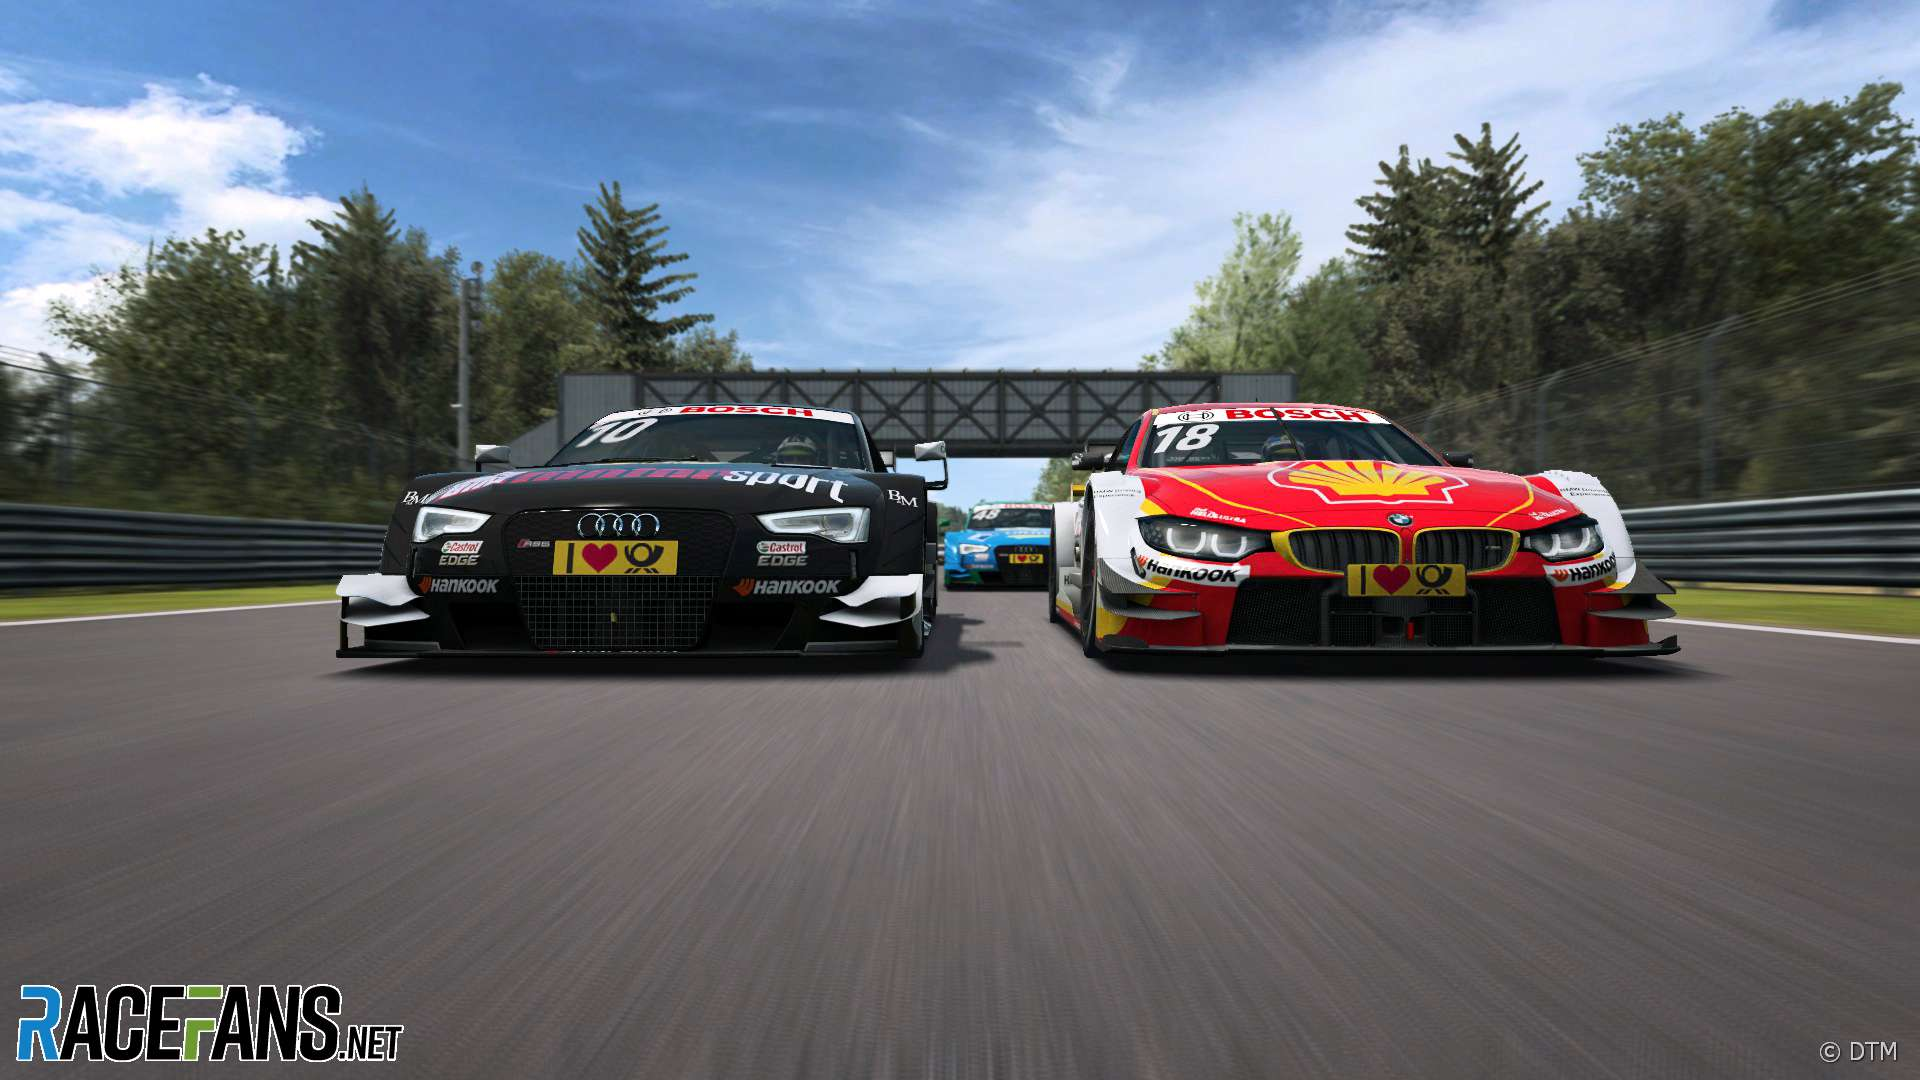 Audi Withdrawal To Leave Bmw As Dtm S Only Manufacturer In 2021 Racefans